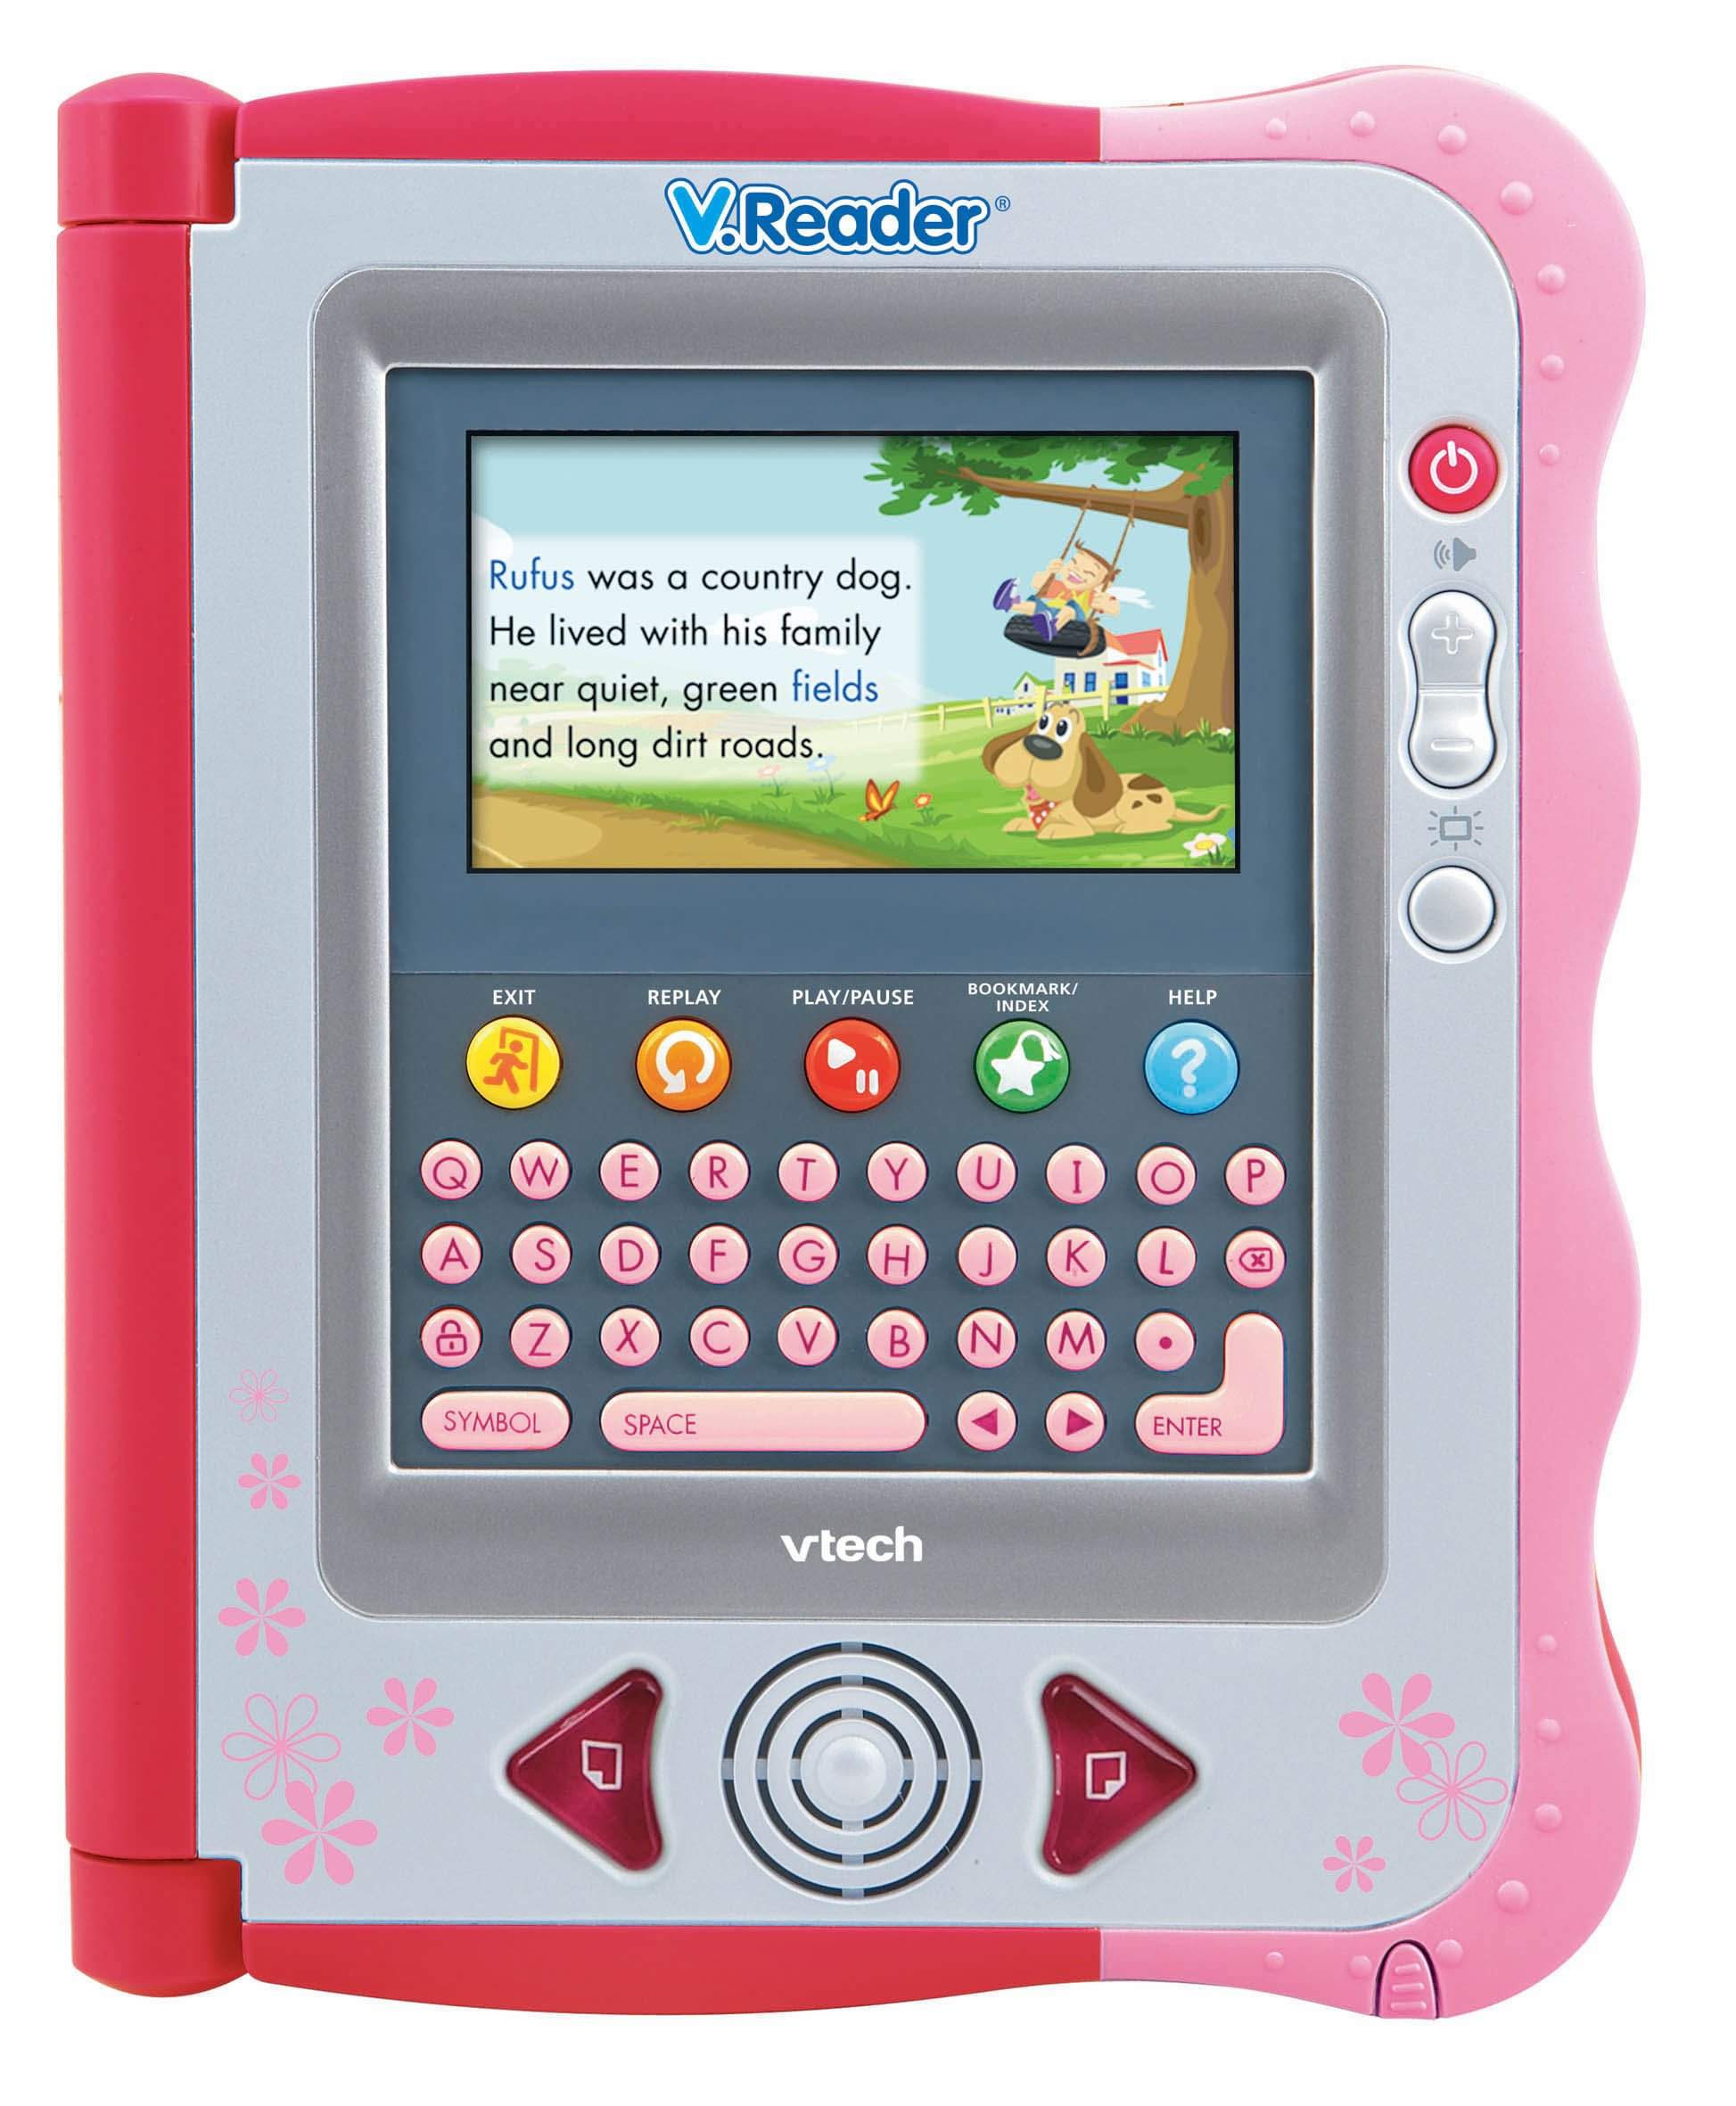 V.Reader Animated E-Book System - Pink by VTech